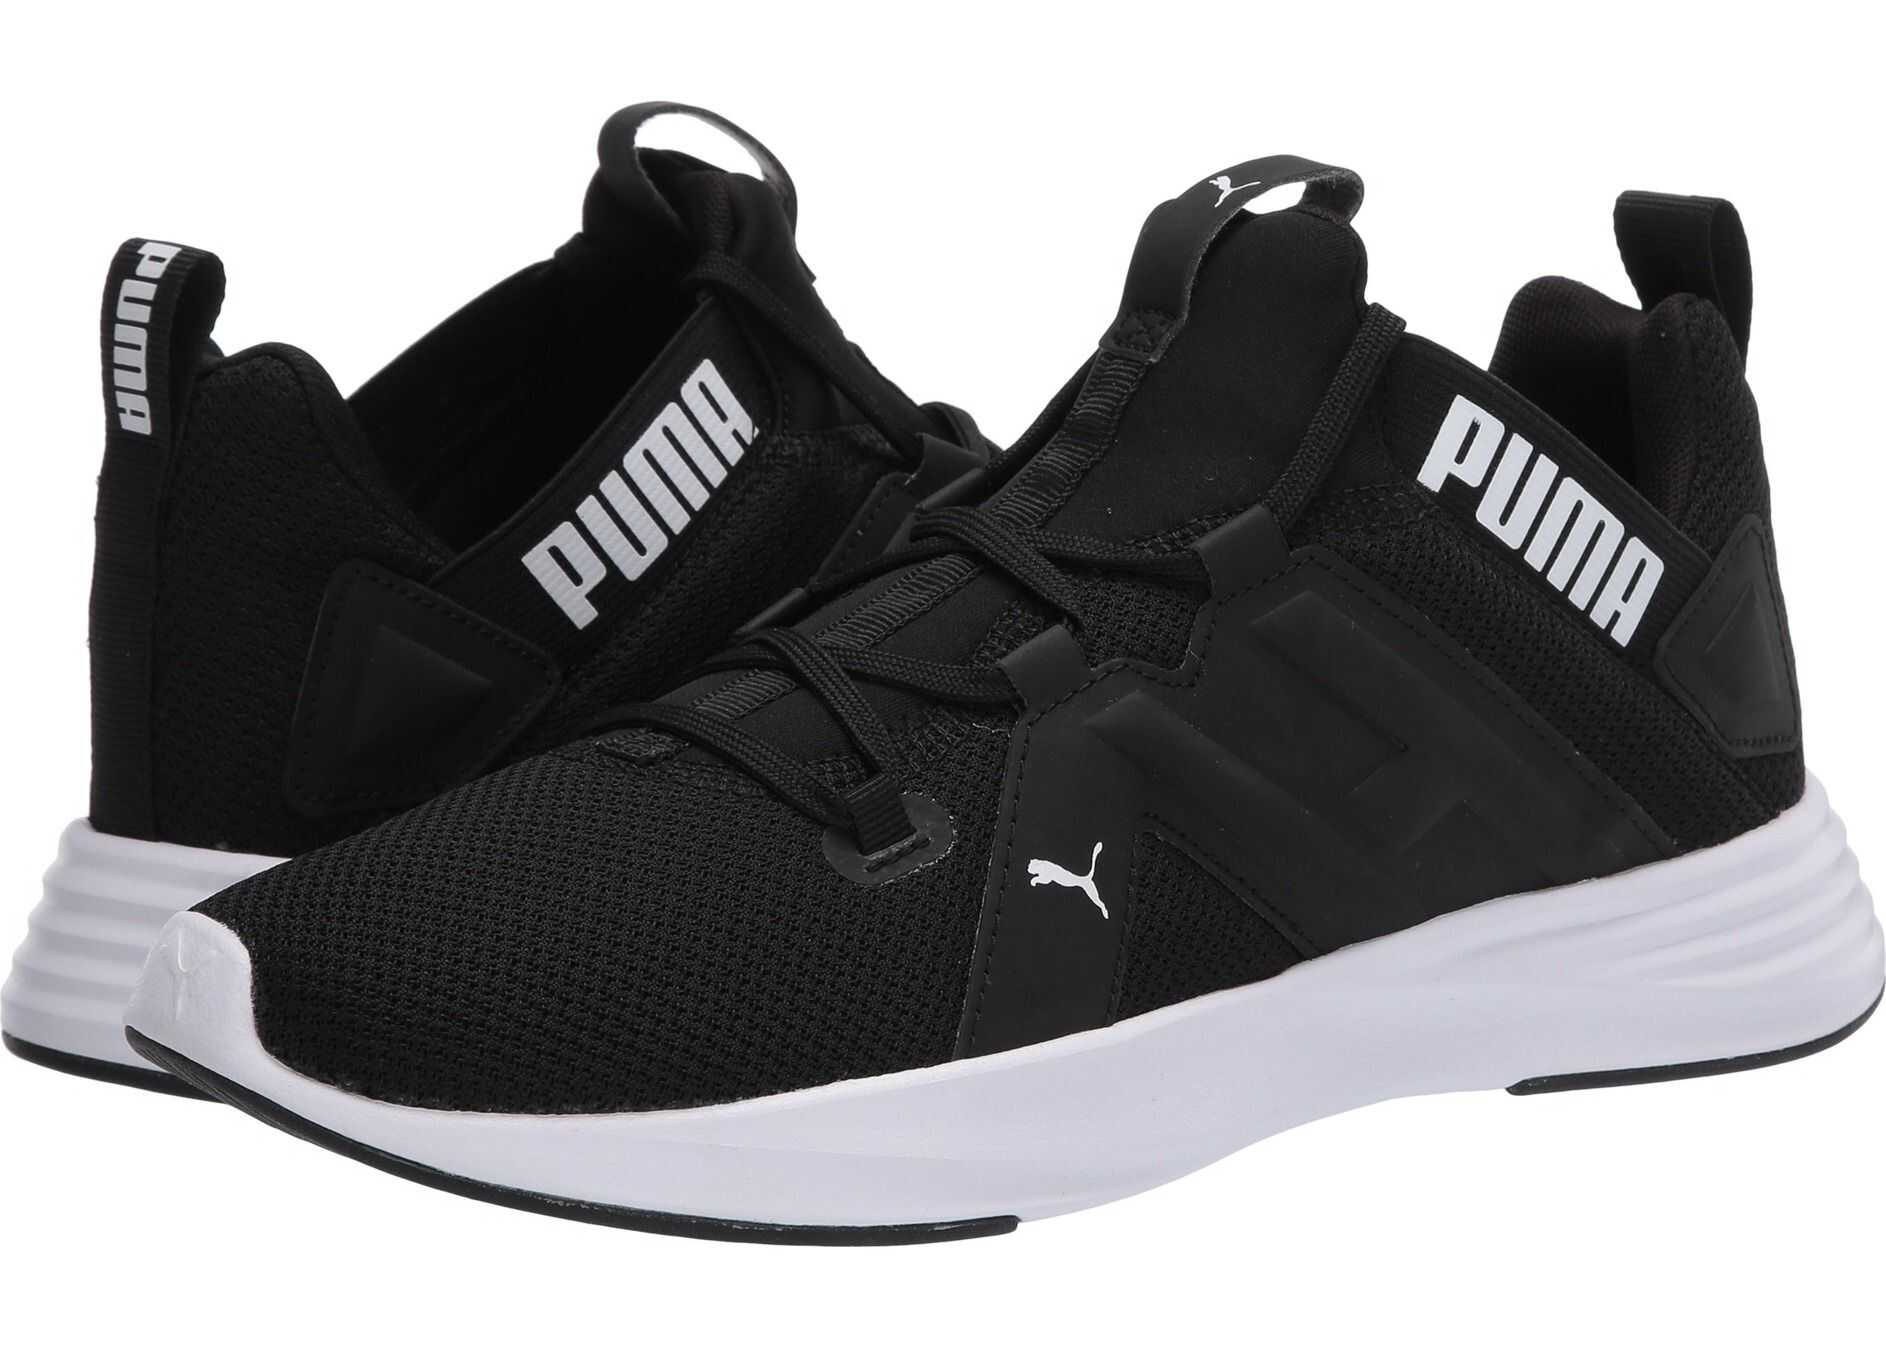 PUMA Contempt Demi Puma Black/Puma White